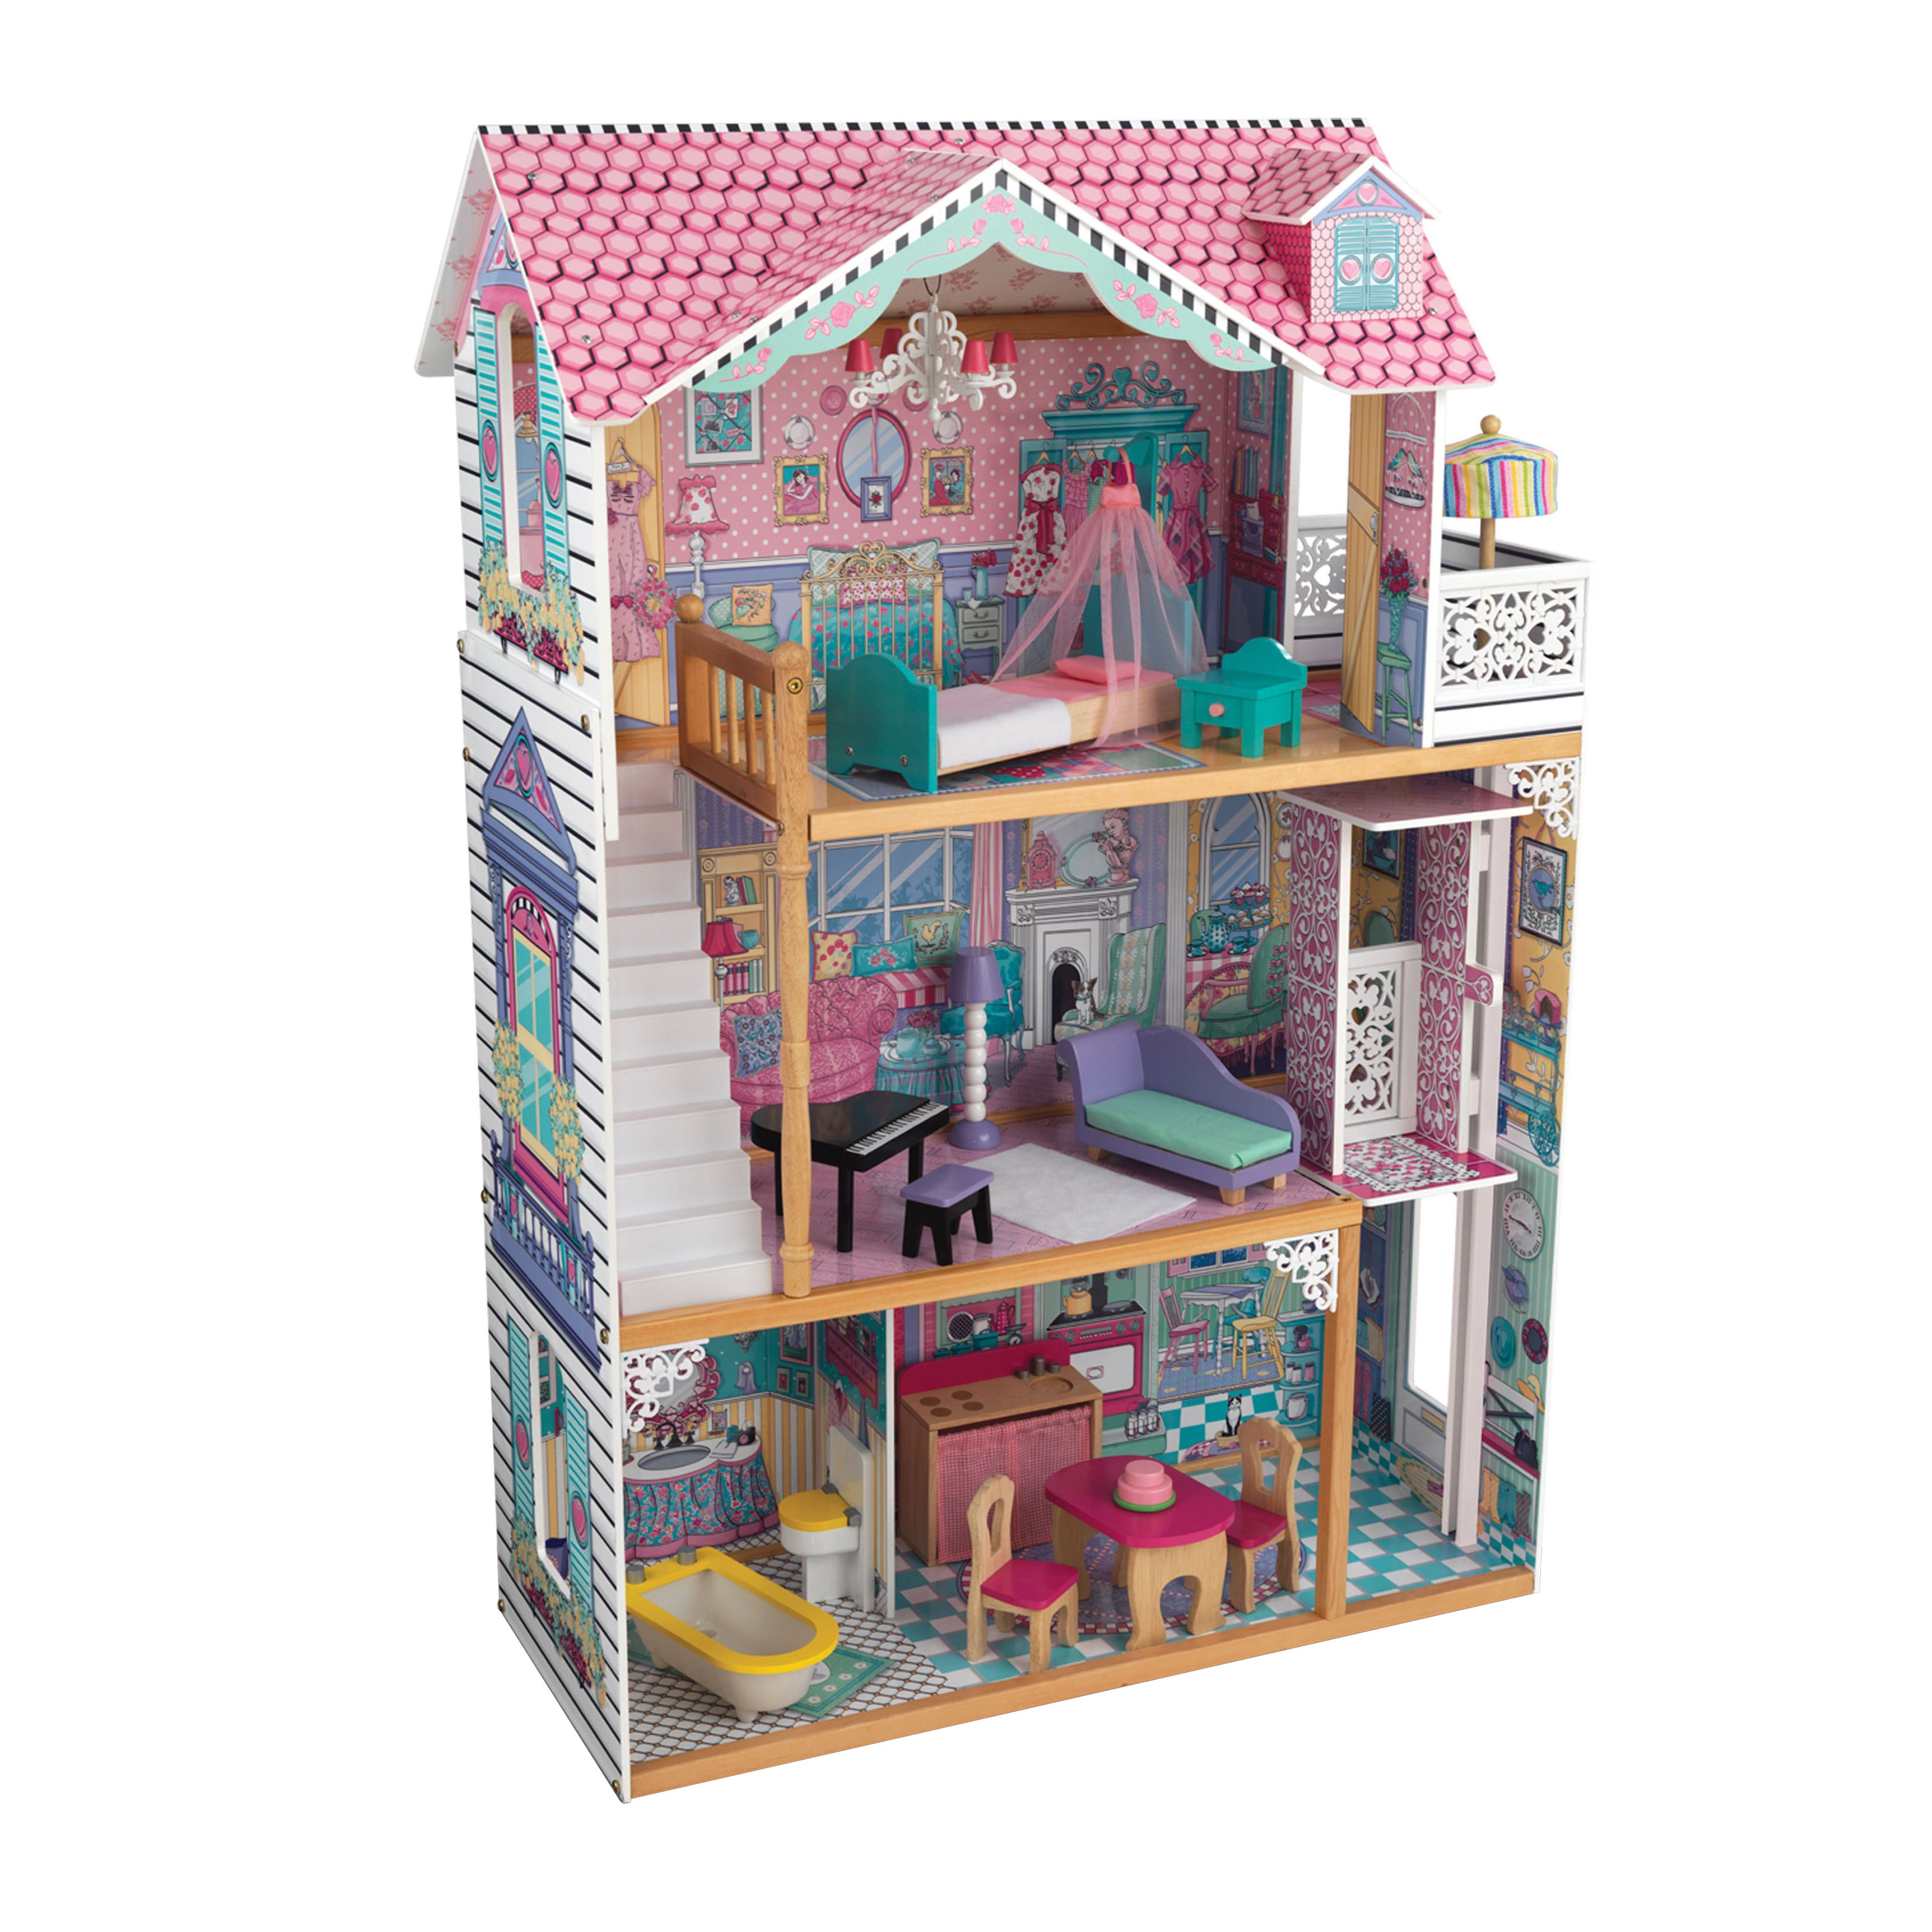 KidKraft Annabelle Dollhouse with 17 Accessories